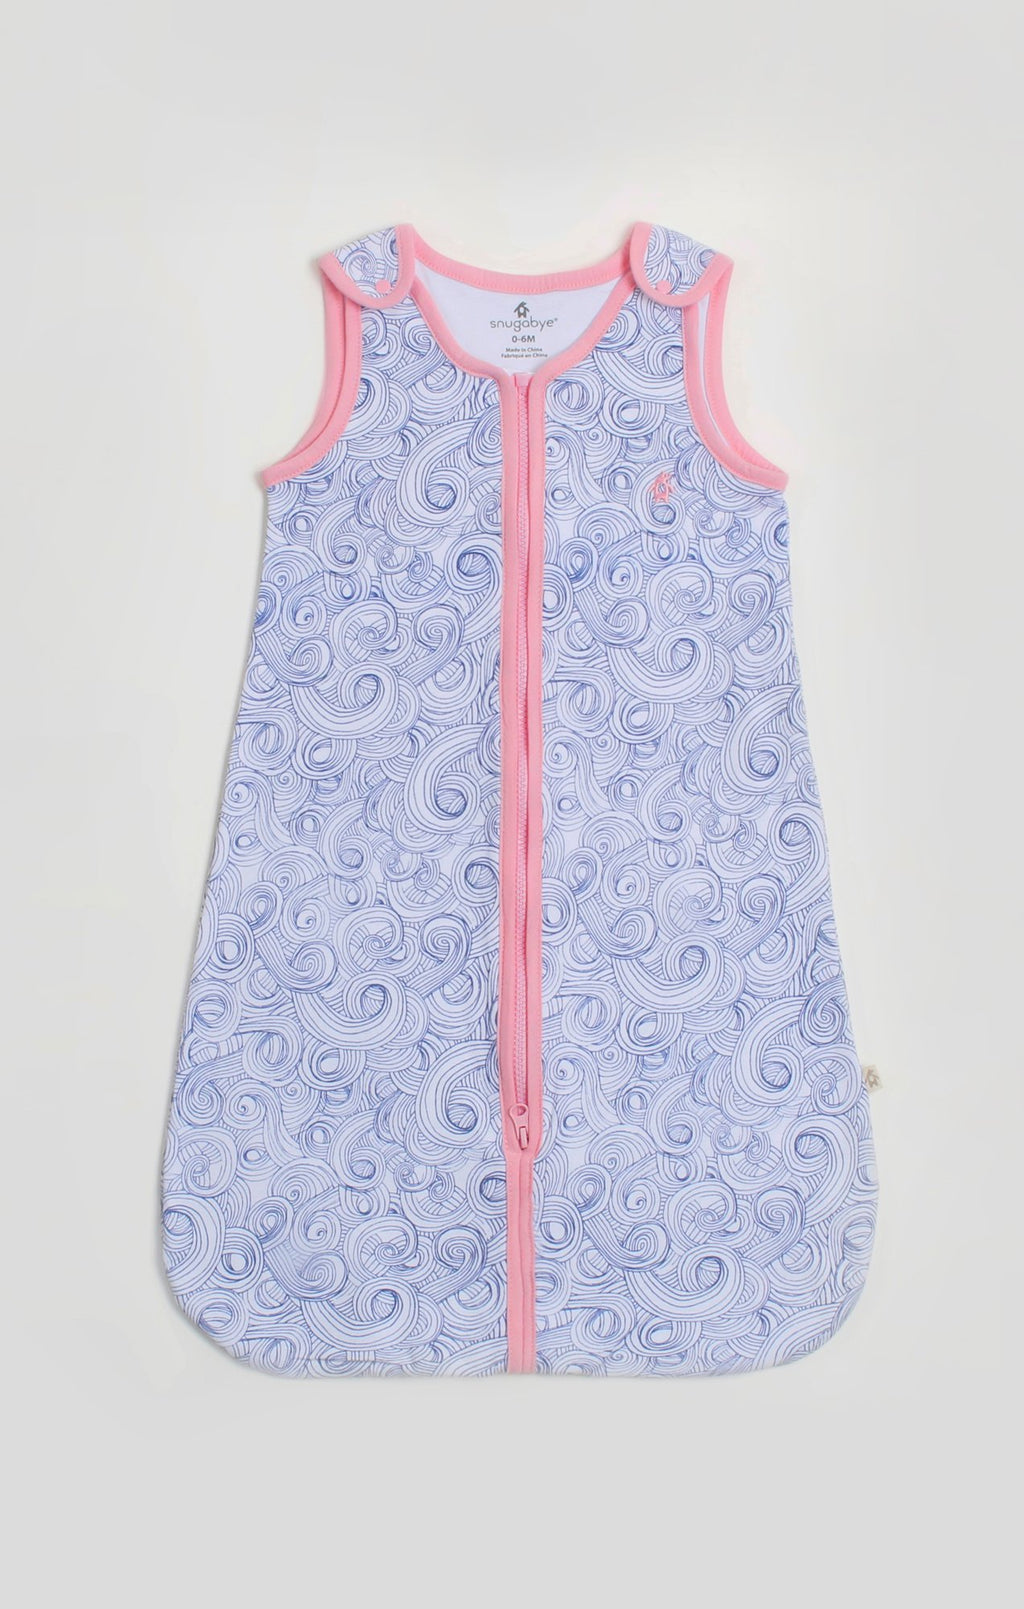 Baby Sleep Sack - Blue Swirl Sleep Bag